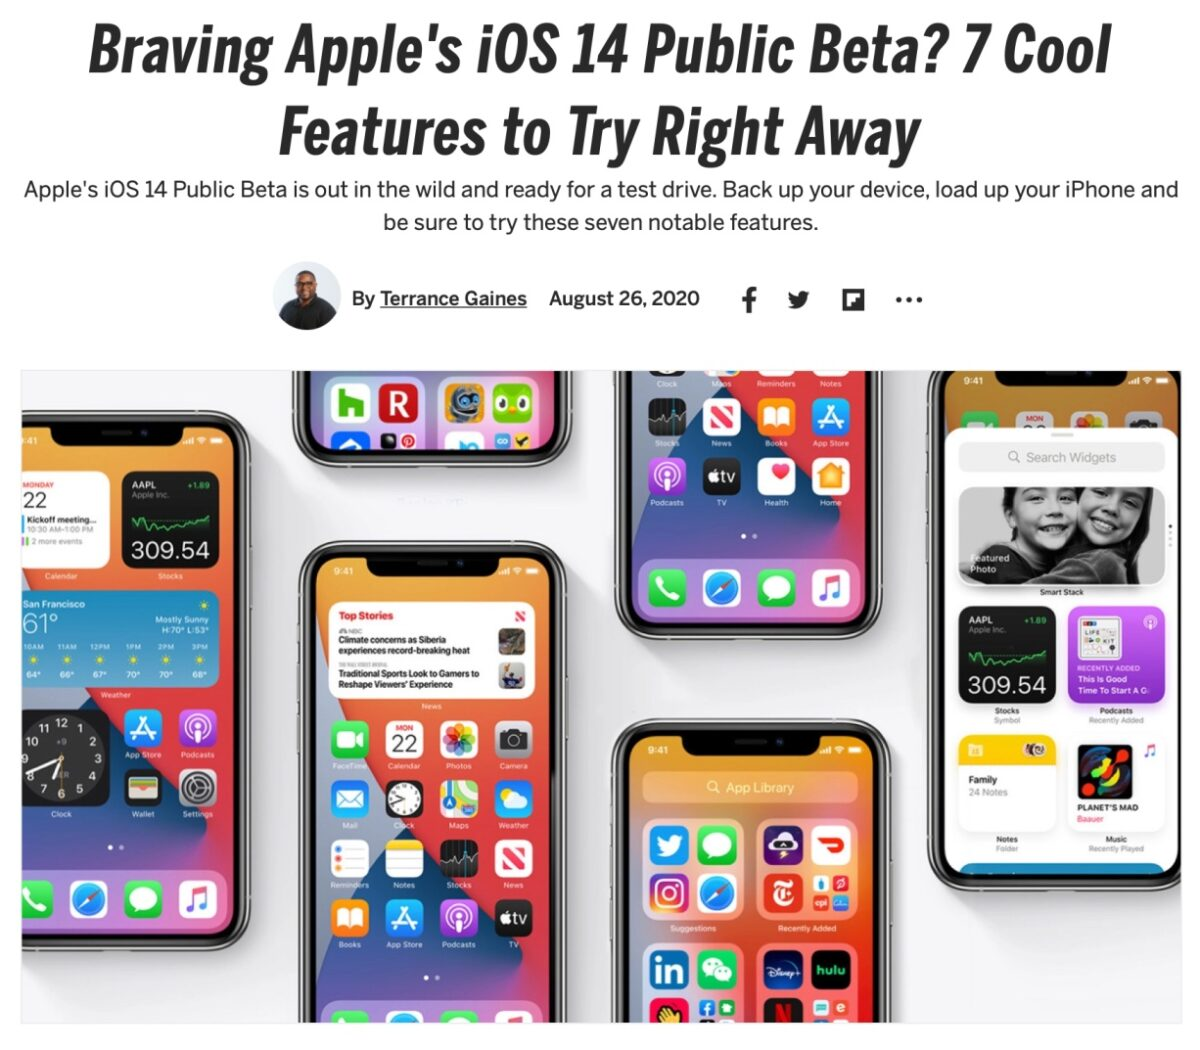 Braving Apple's iOS 14 Public Beta 7 Cool Features